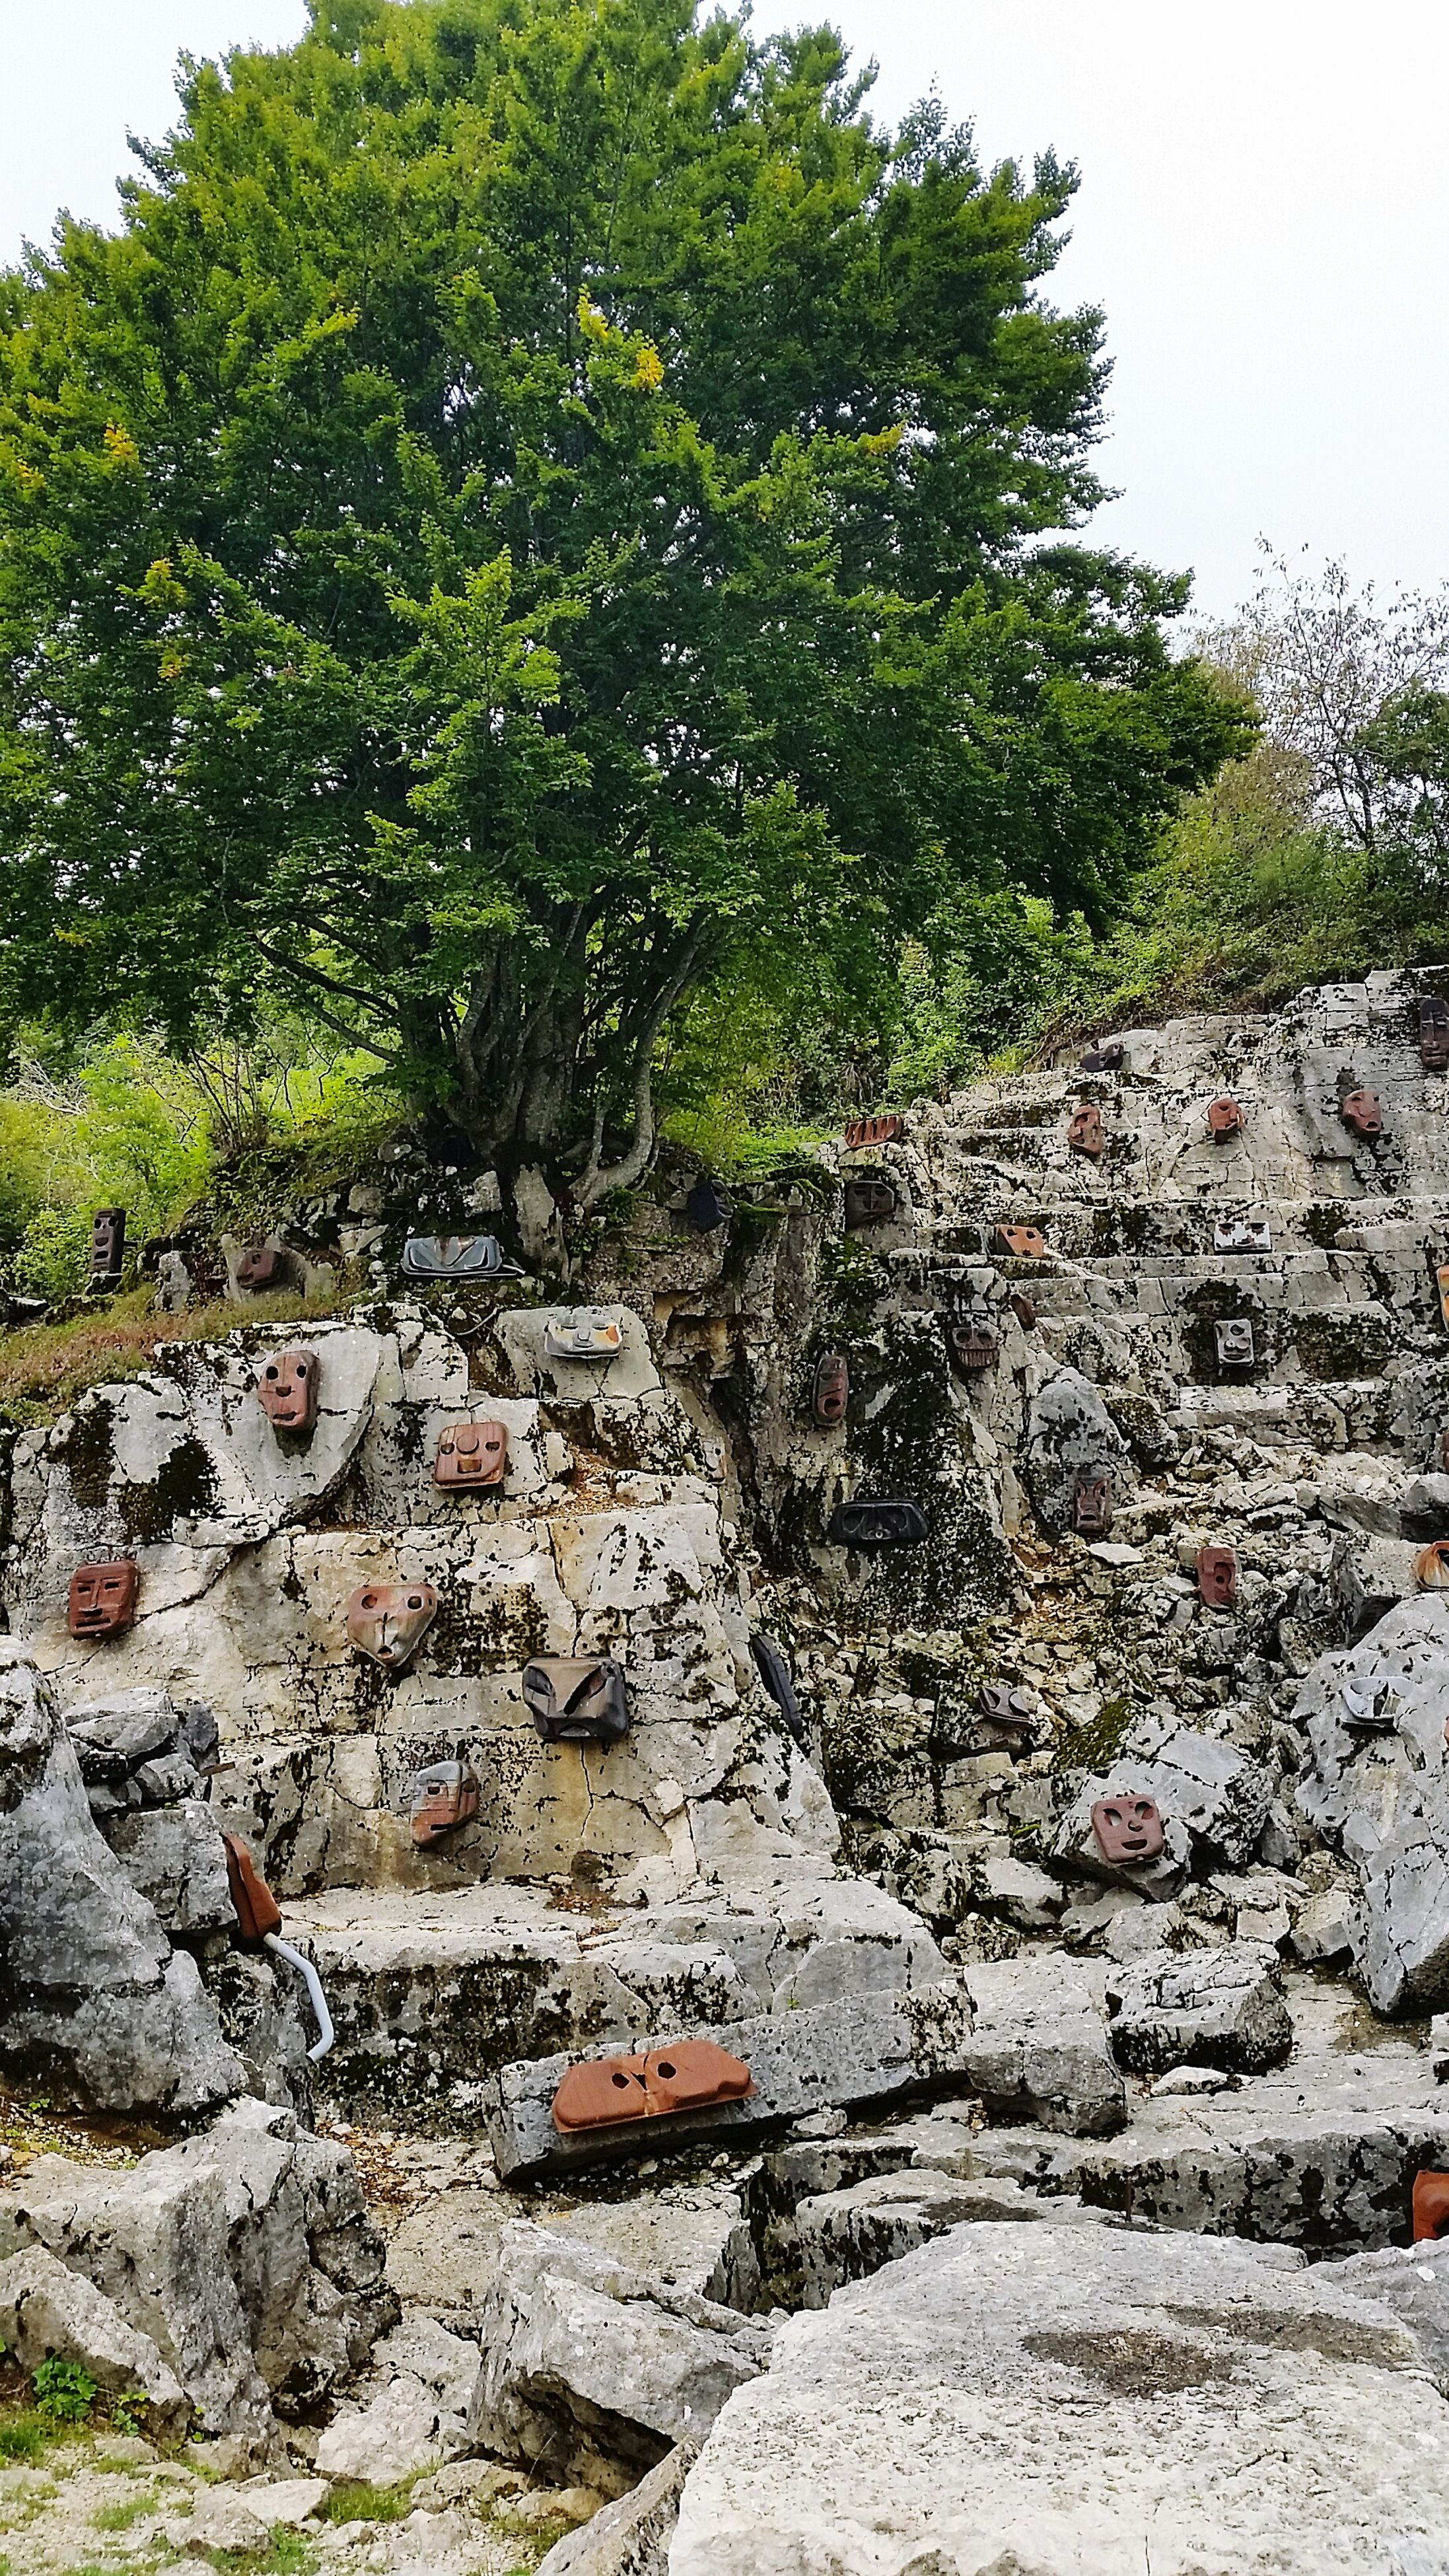 tree, water, rock - object, clear sky, growth, nature, plant, tranquility, day, tranquil scene, transportation, stone - object, green color, beauty in nature, outdoors, abandoned, no people, sky, scenics, river